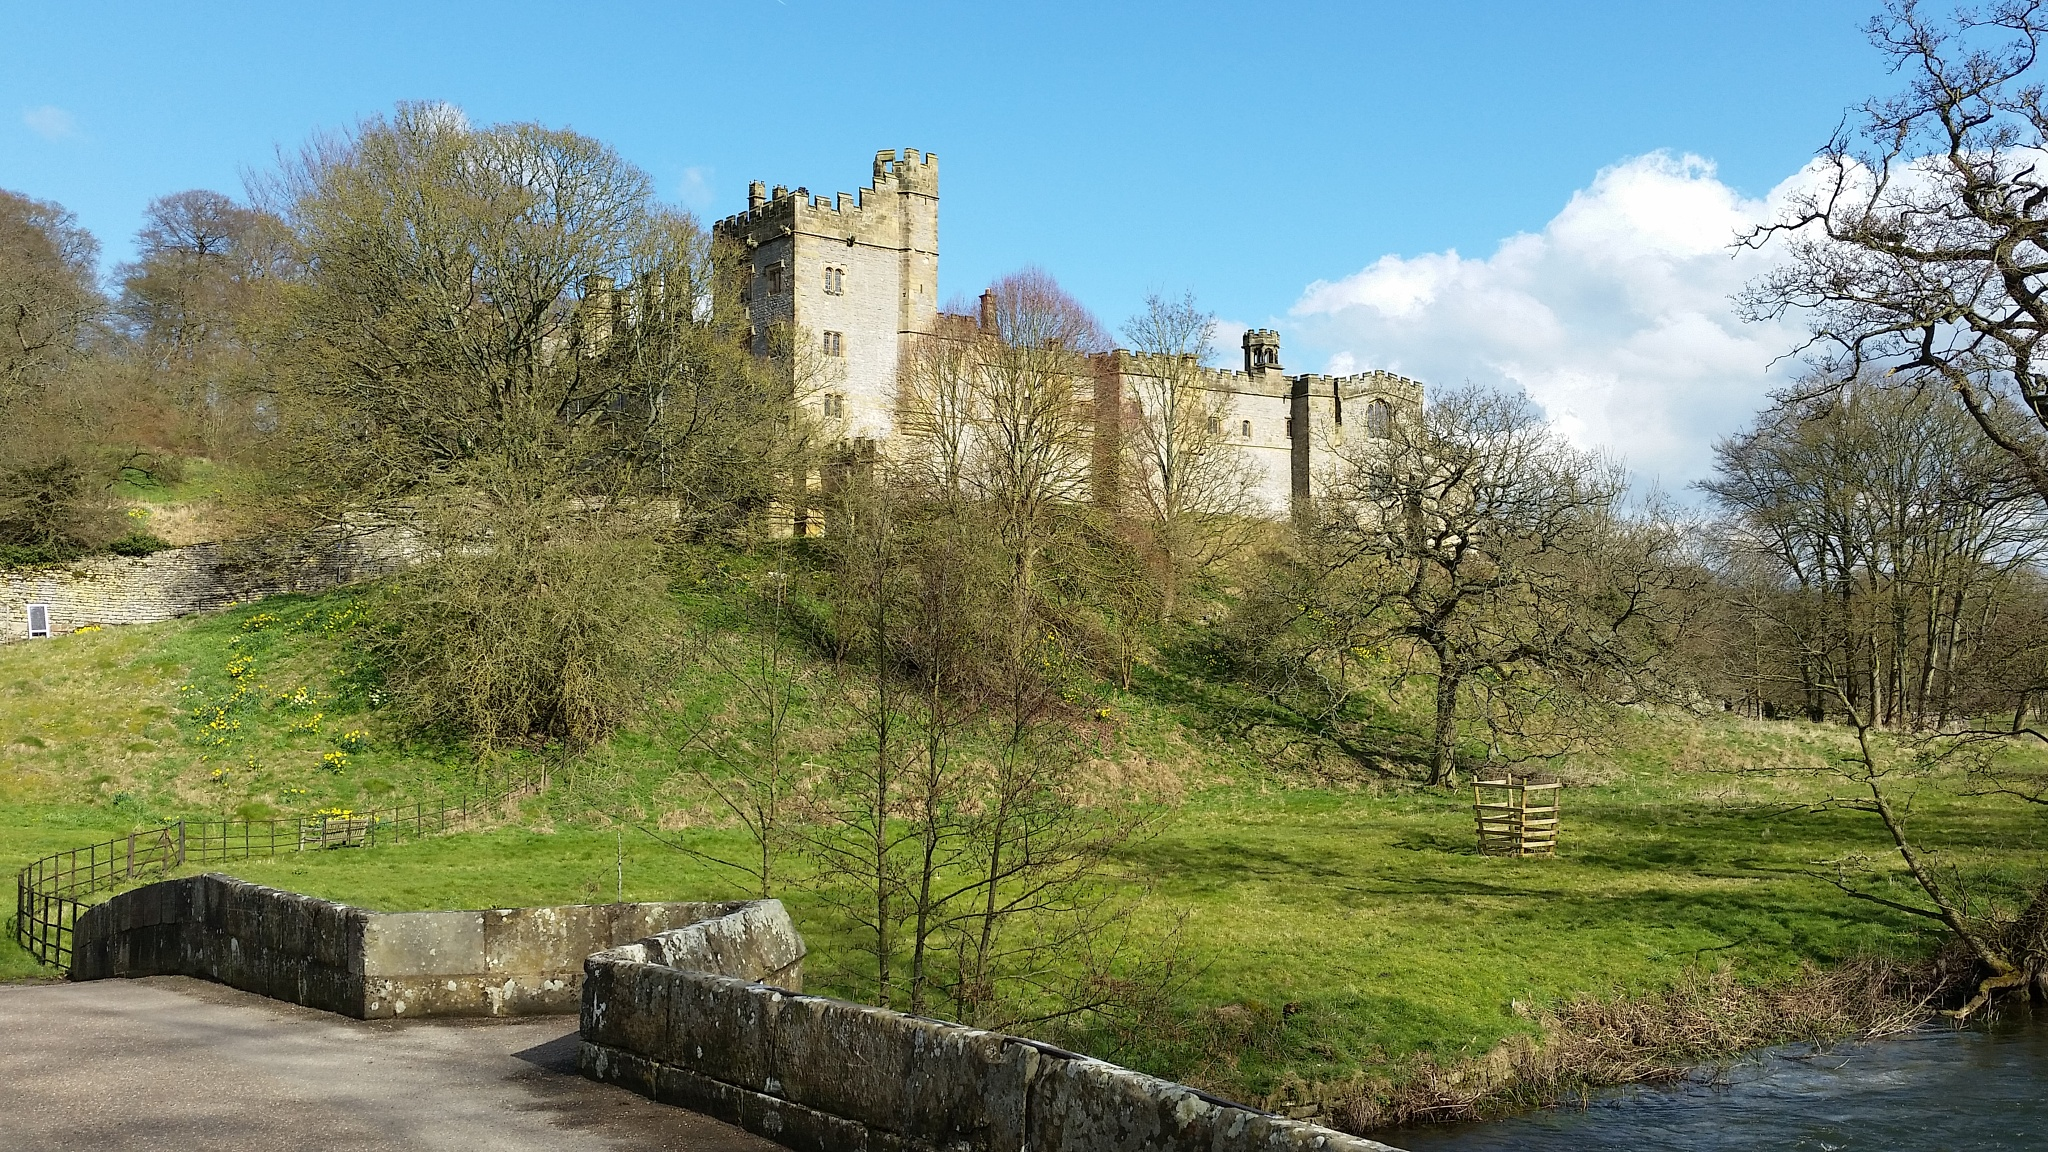 Spring at Haddon Hall by neiloswaldjones